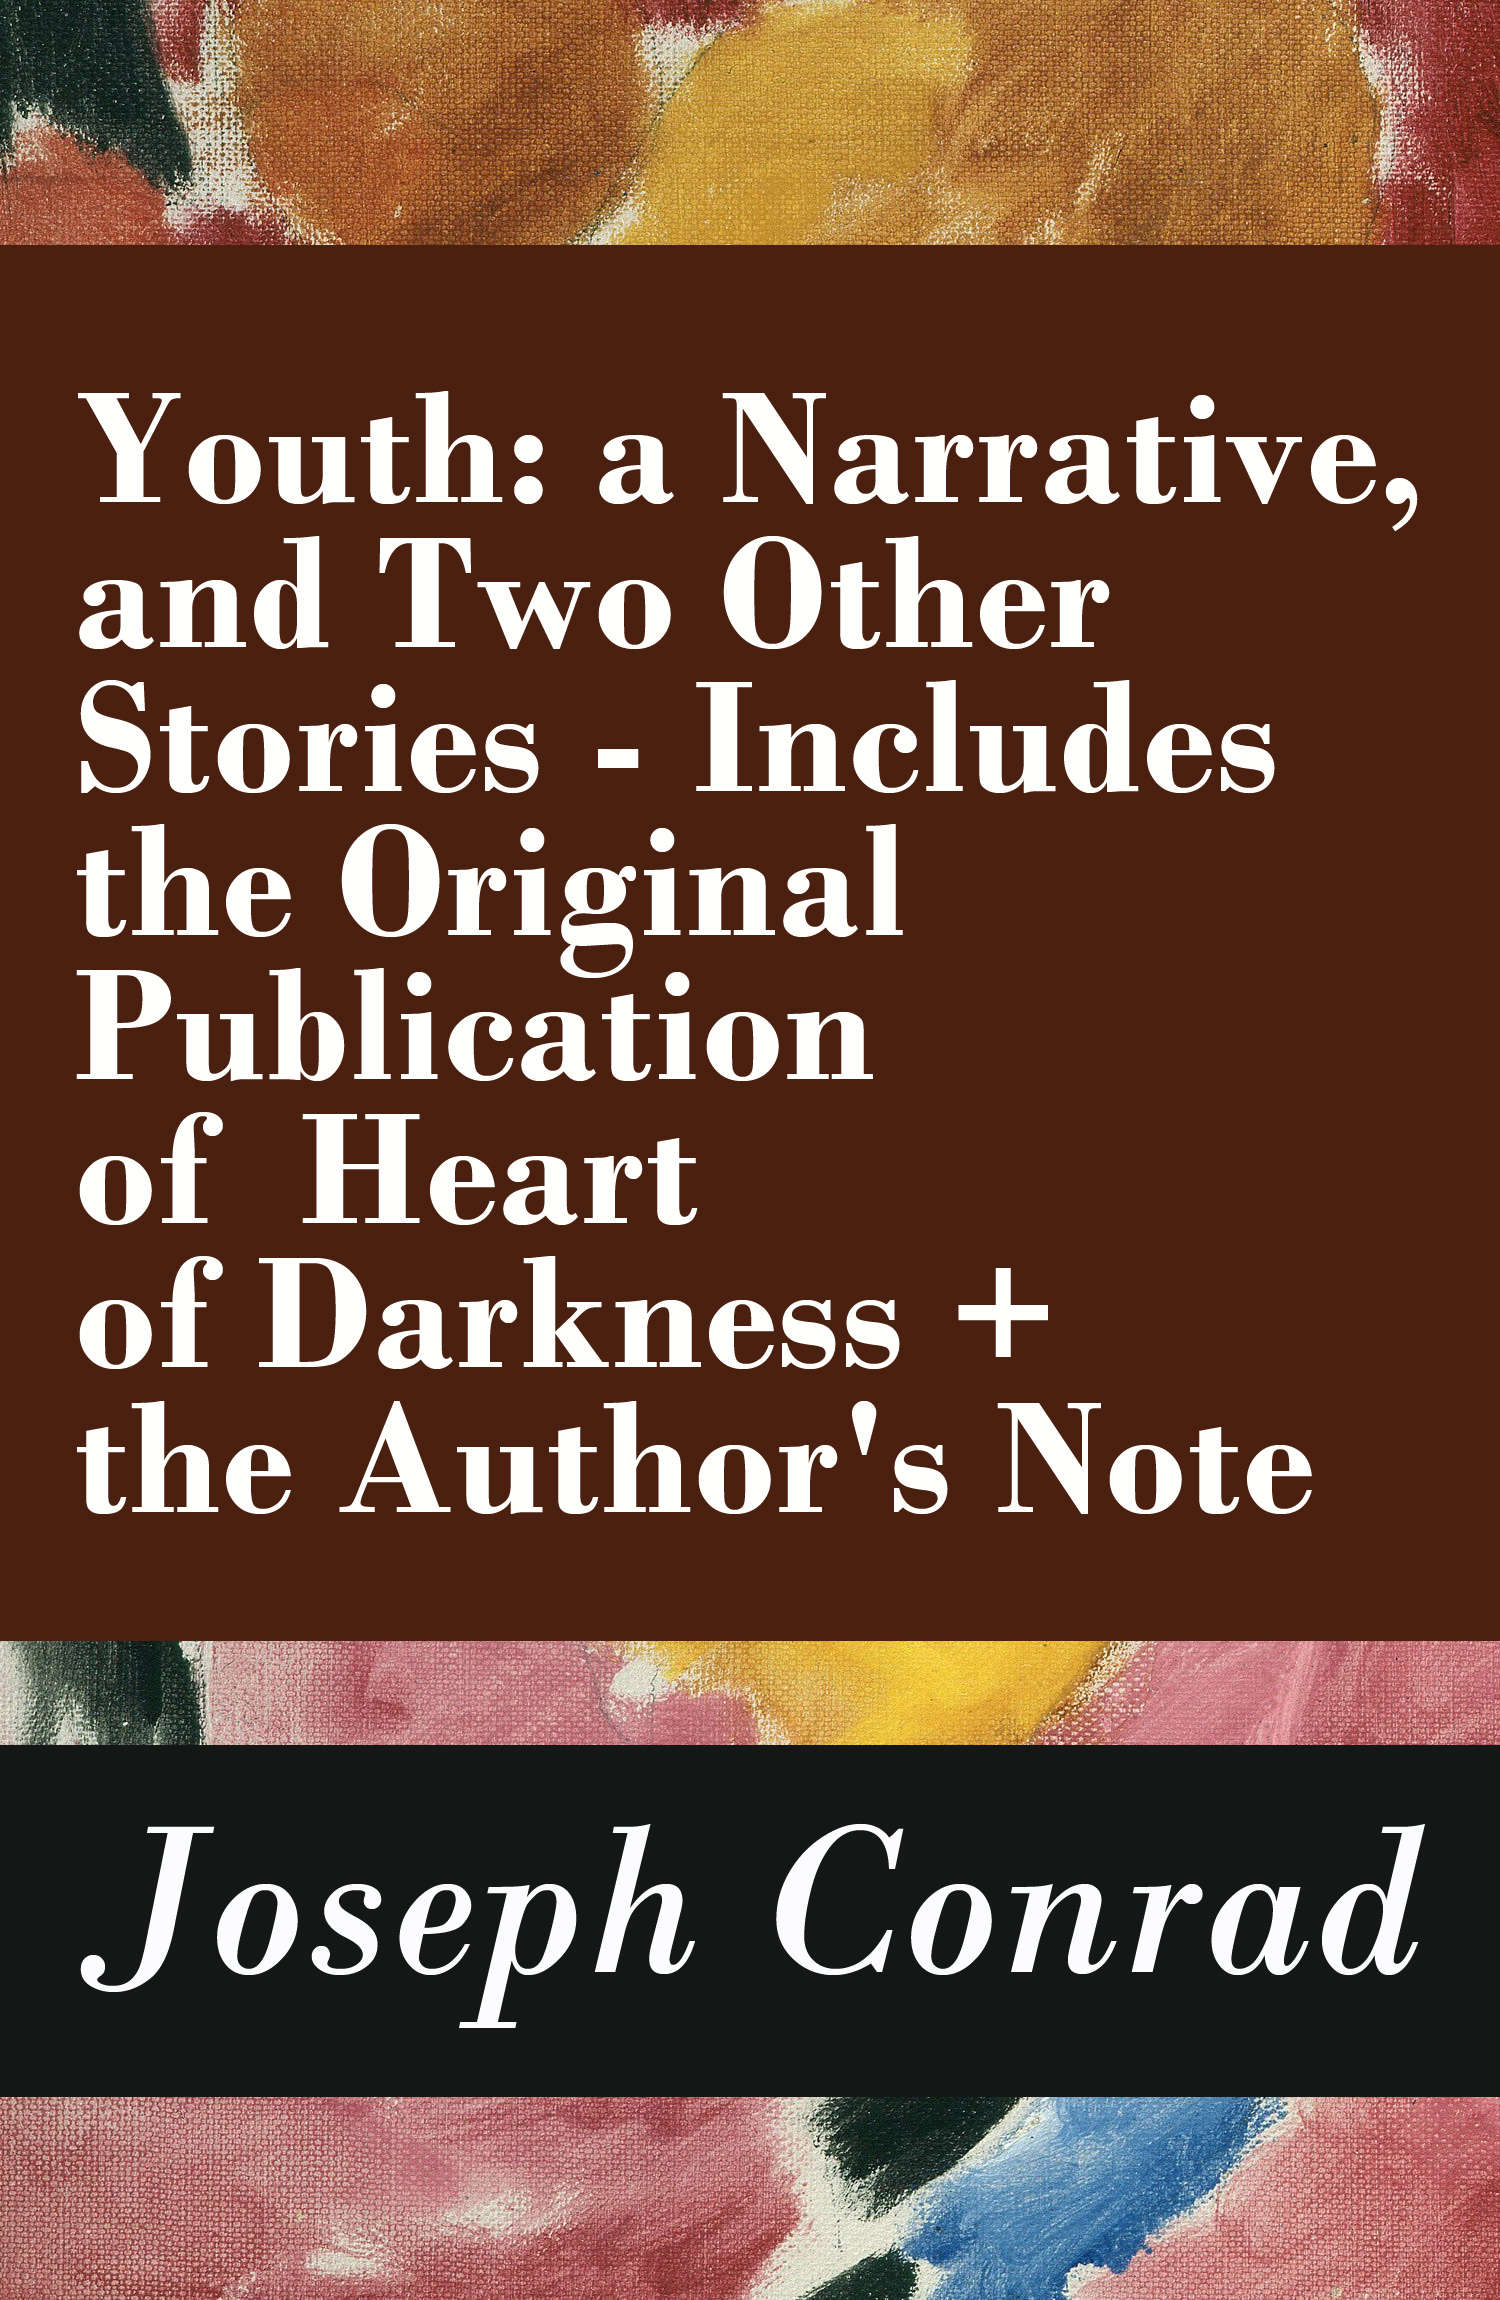 Youth: a Narrative, and Two Other Stories - Includes the Original Publication of Heart of Darkness + the Author's Note